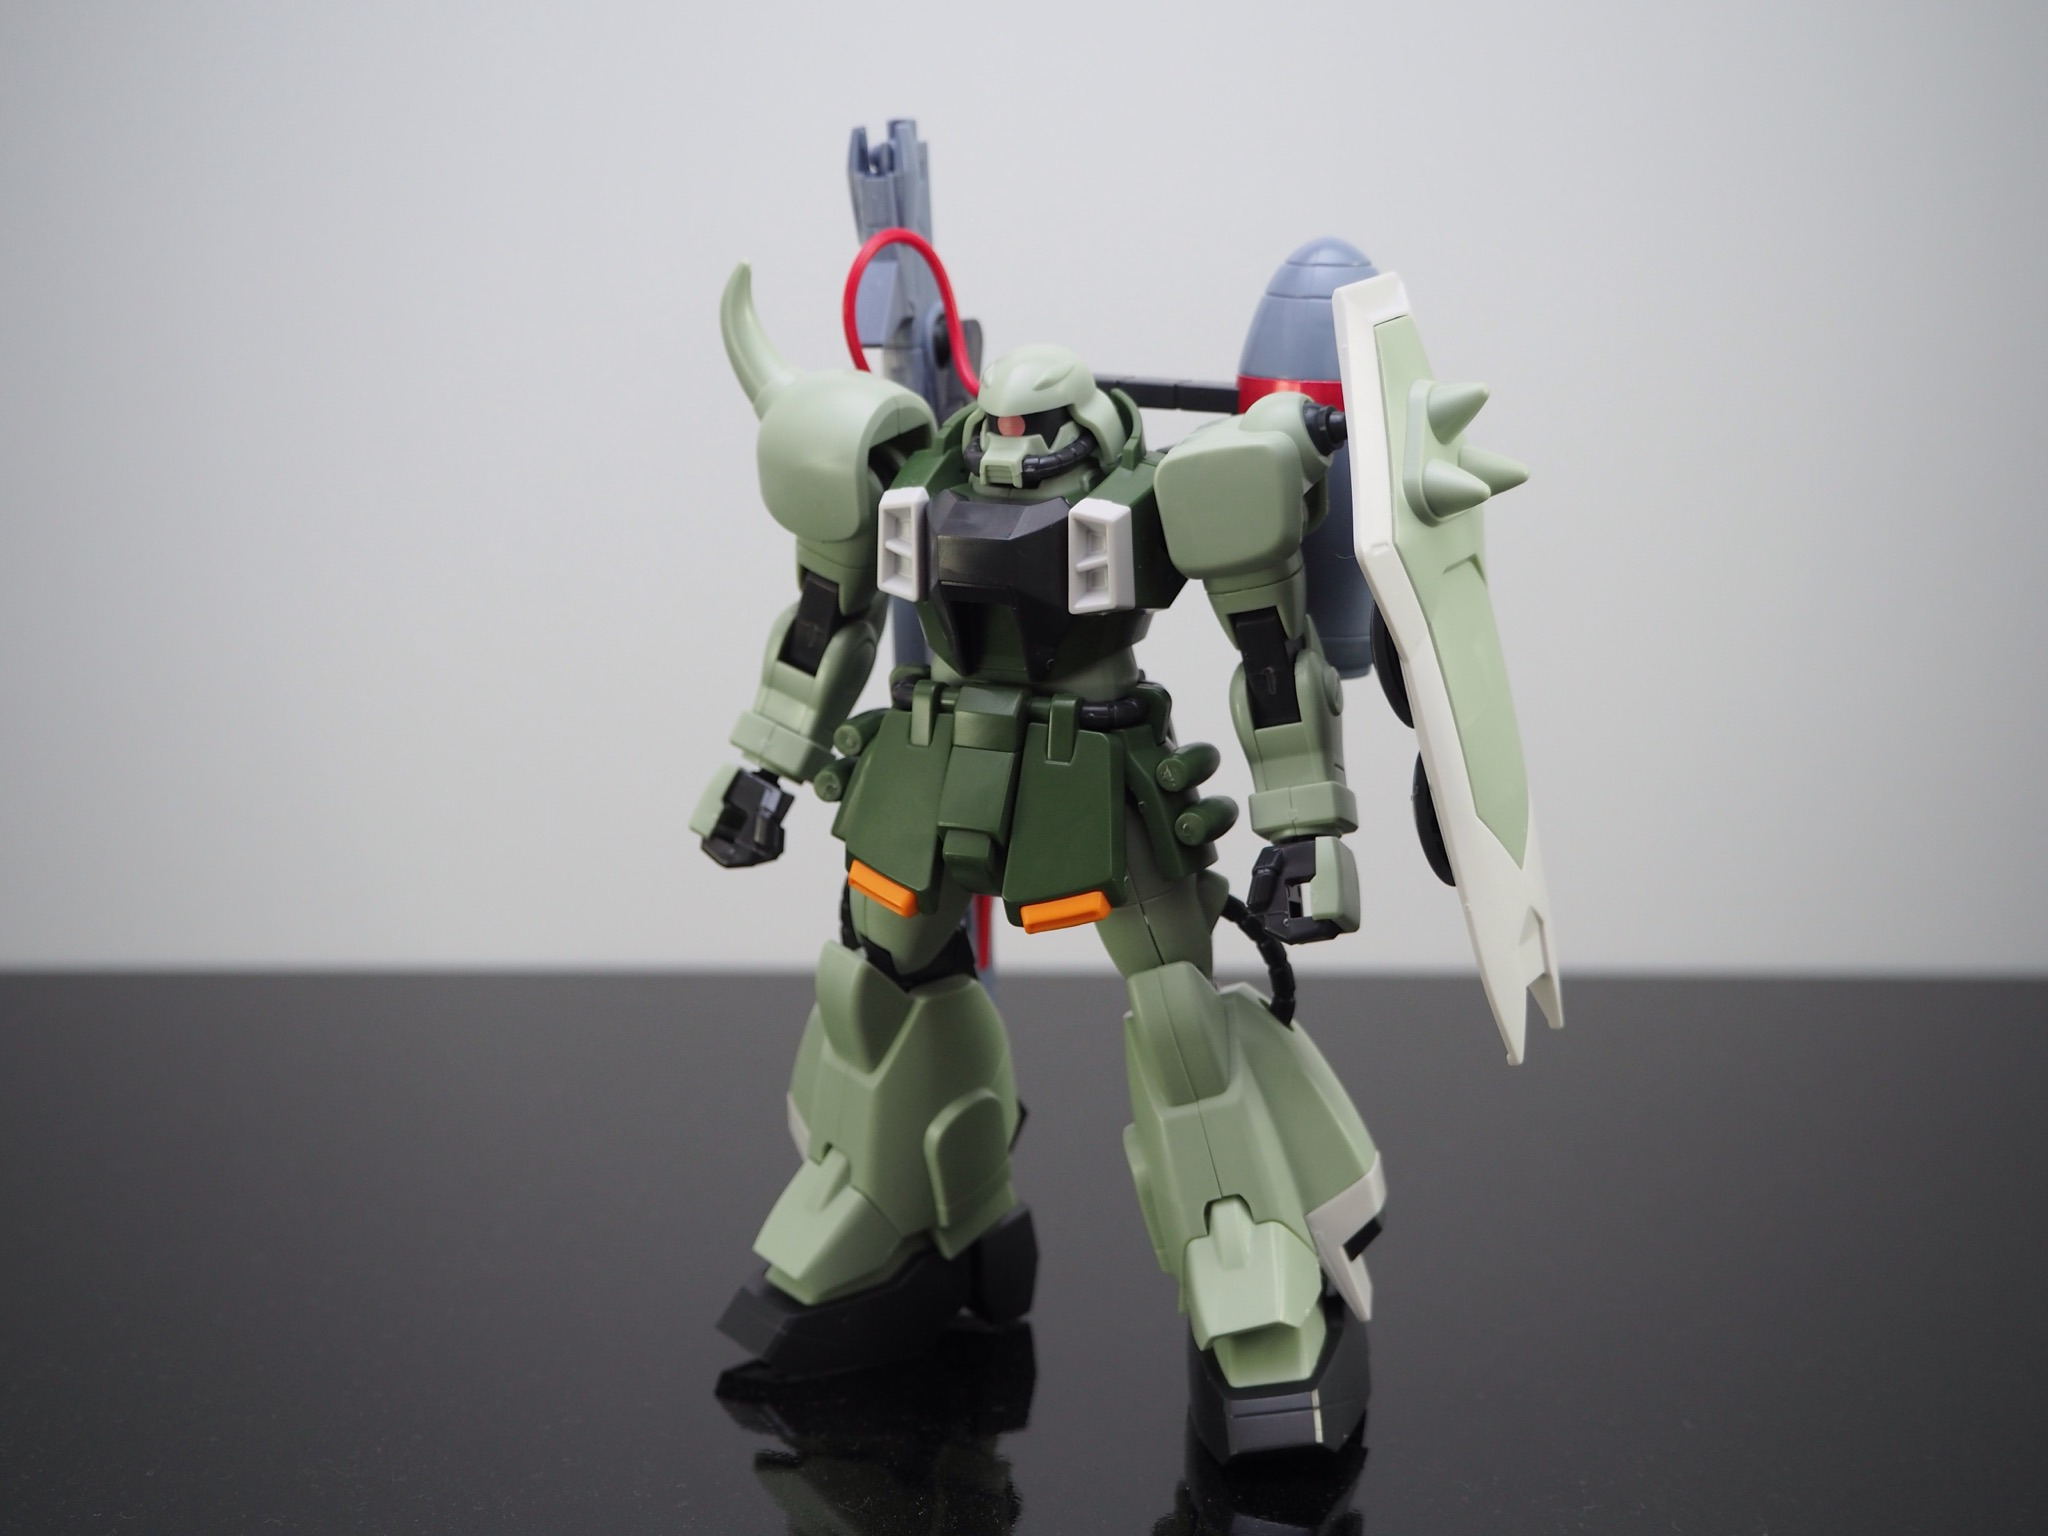 HG 1/144 ZGMF-1000/A1 ガナーザクウォーリア